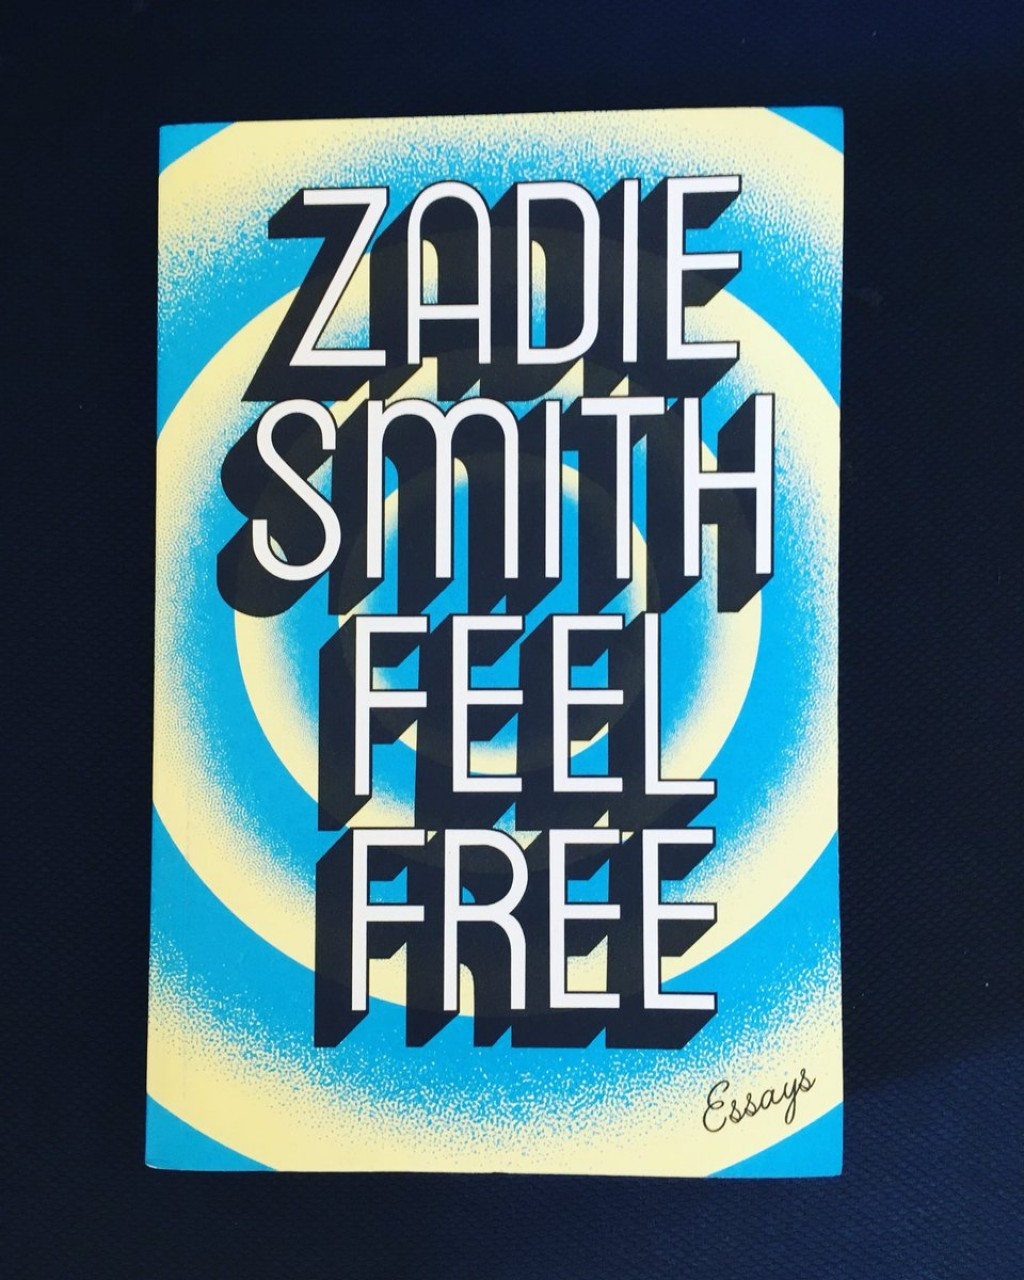 008 Dpy9unvx0aaidrv Essay Example Zadie Smith Wonderful Essays Amazon Radio 4 Large